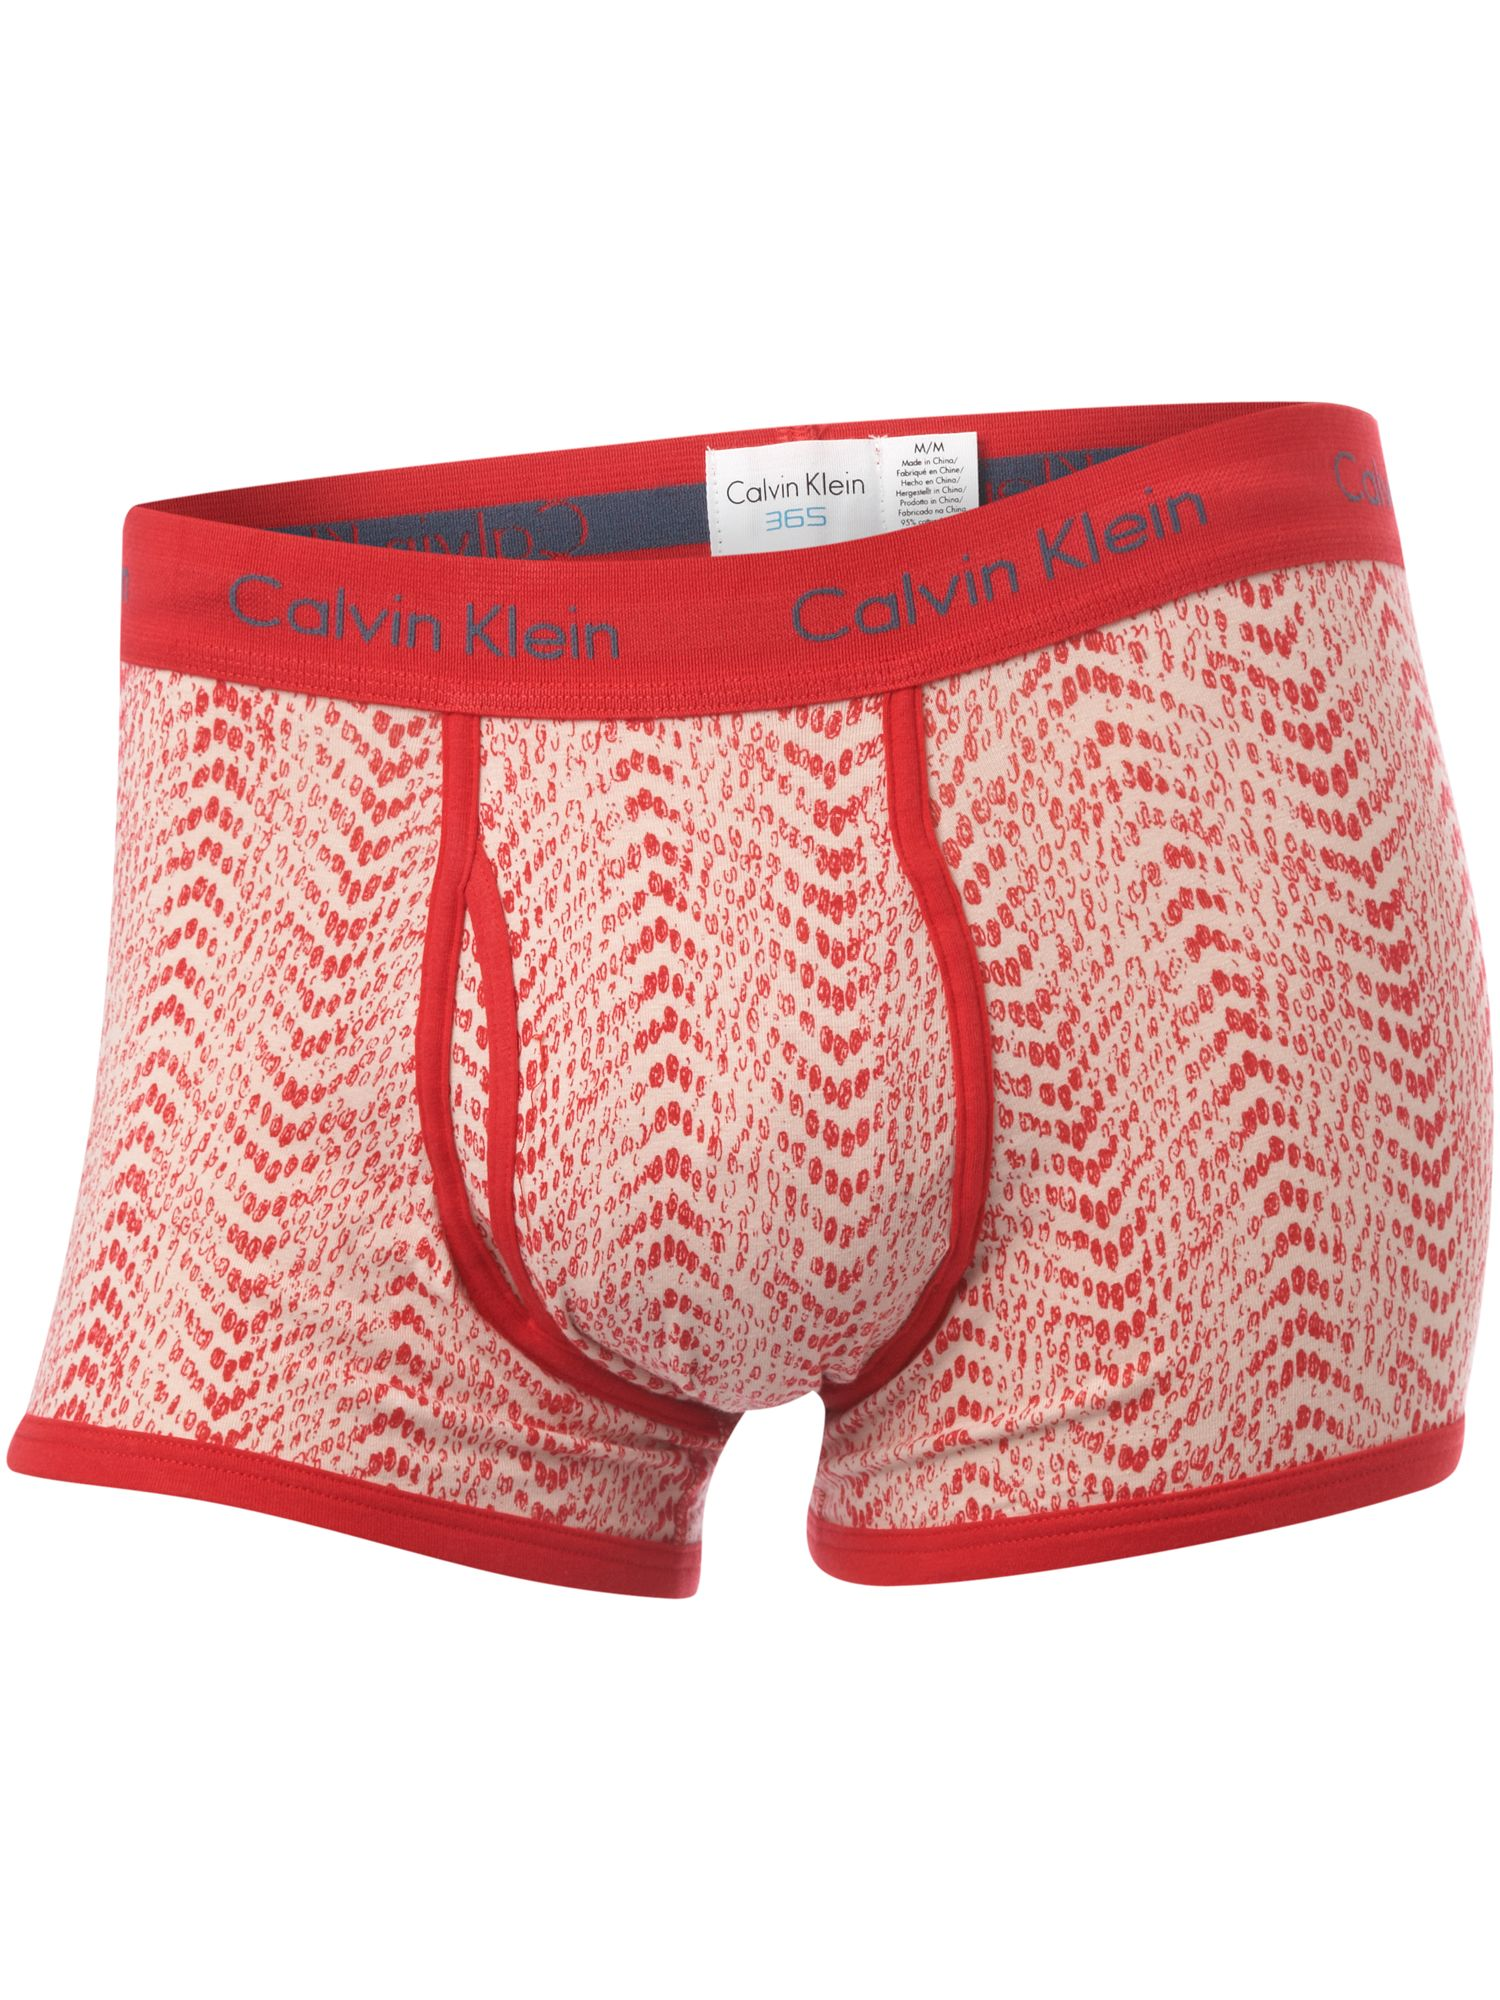 Calvin Klein Red snaked 365 trunk Red